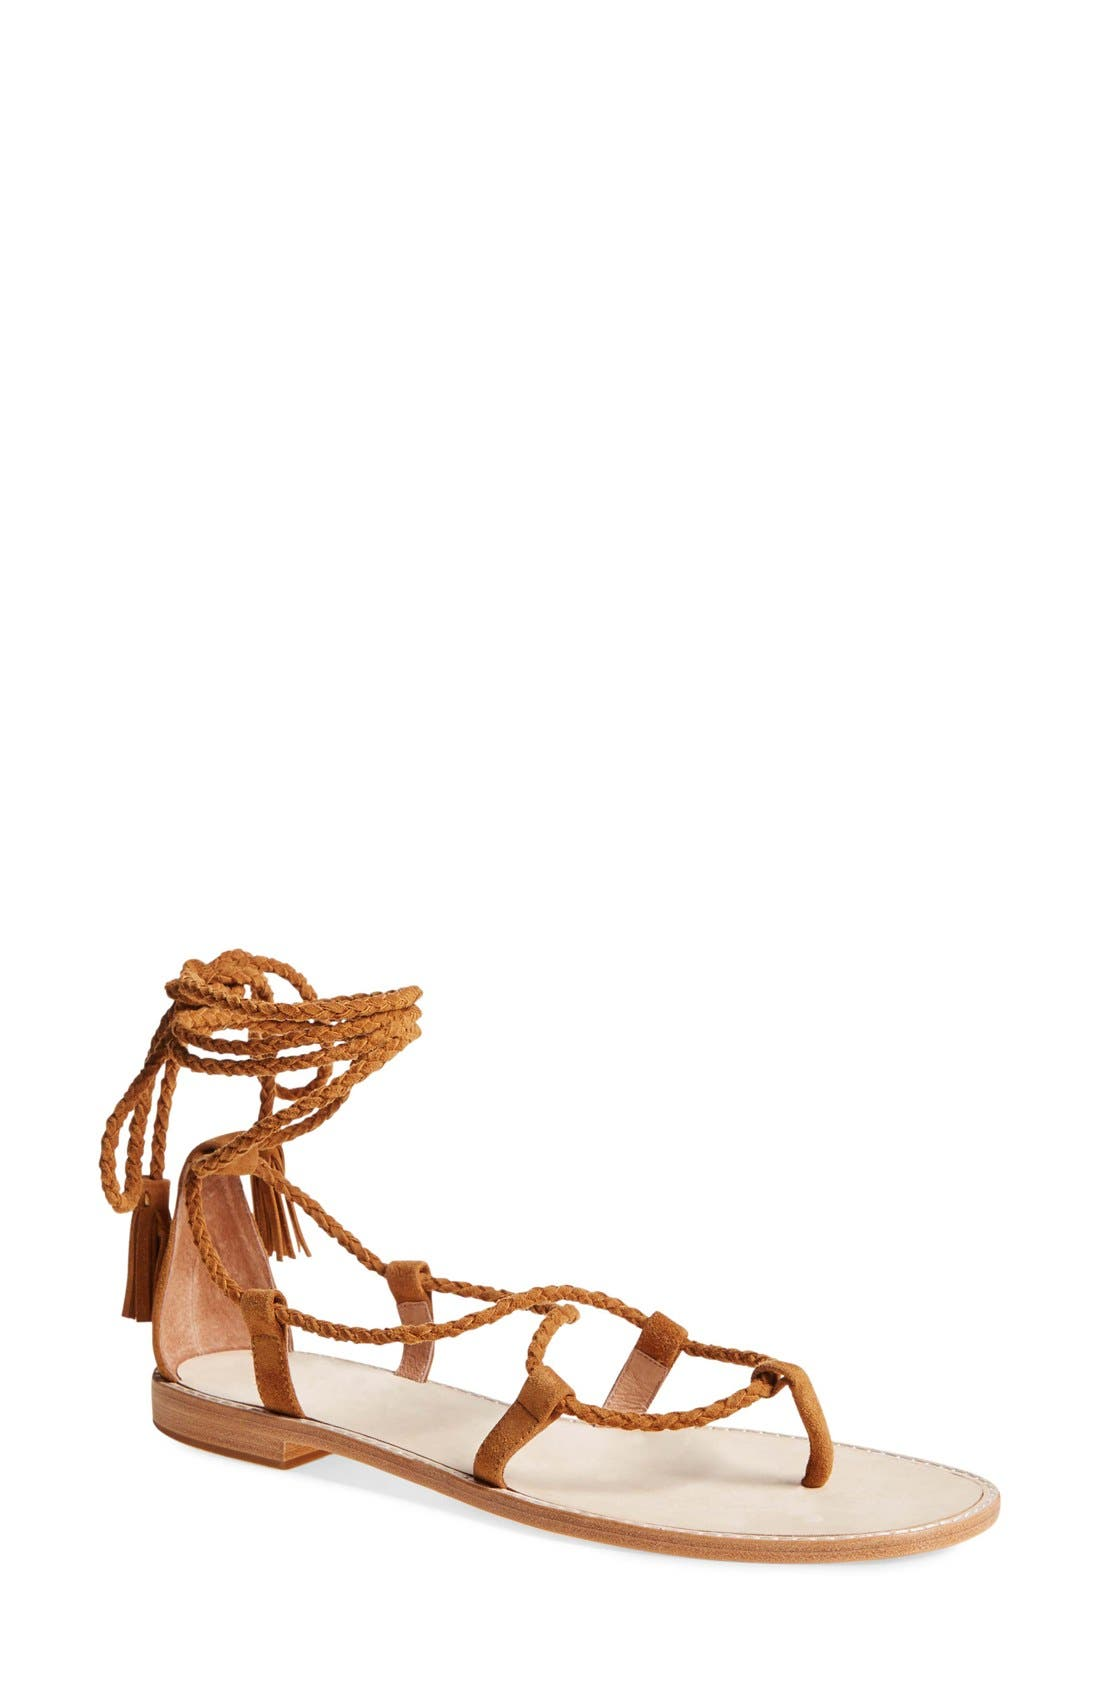 Alternate Image 1 Selected - Joie 'Bailee' Lace-Up Sandal (Women)